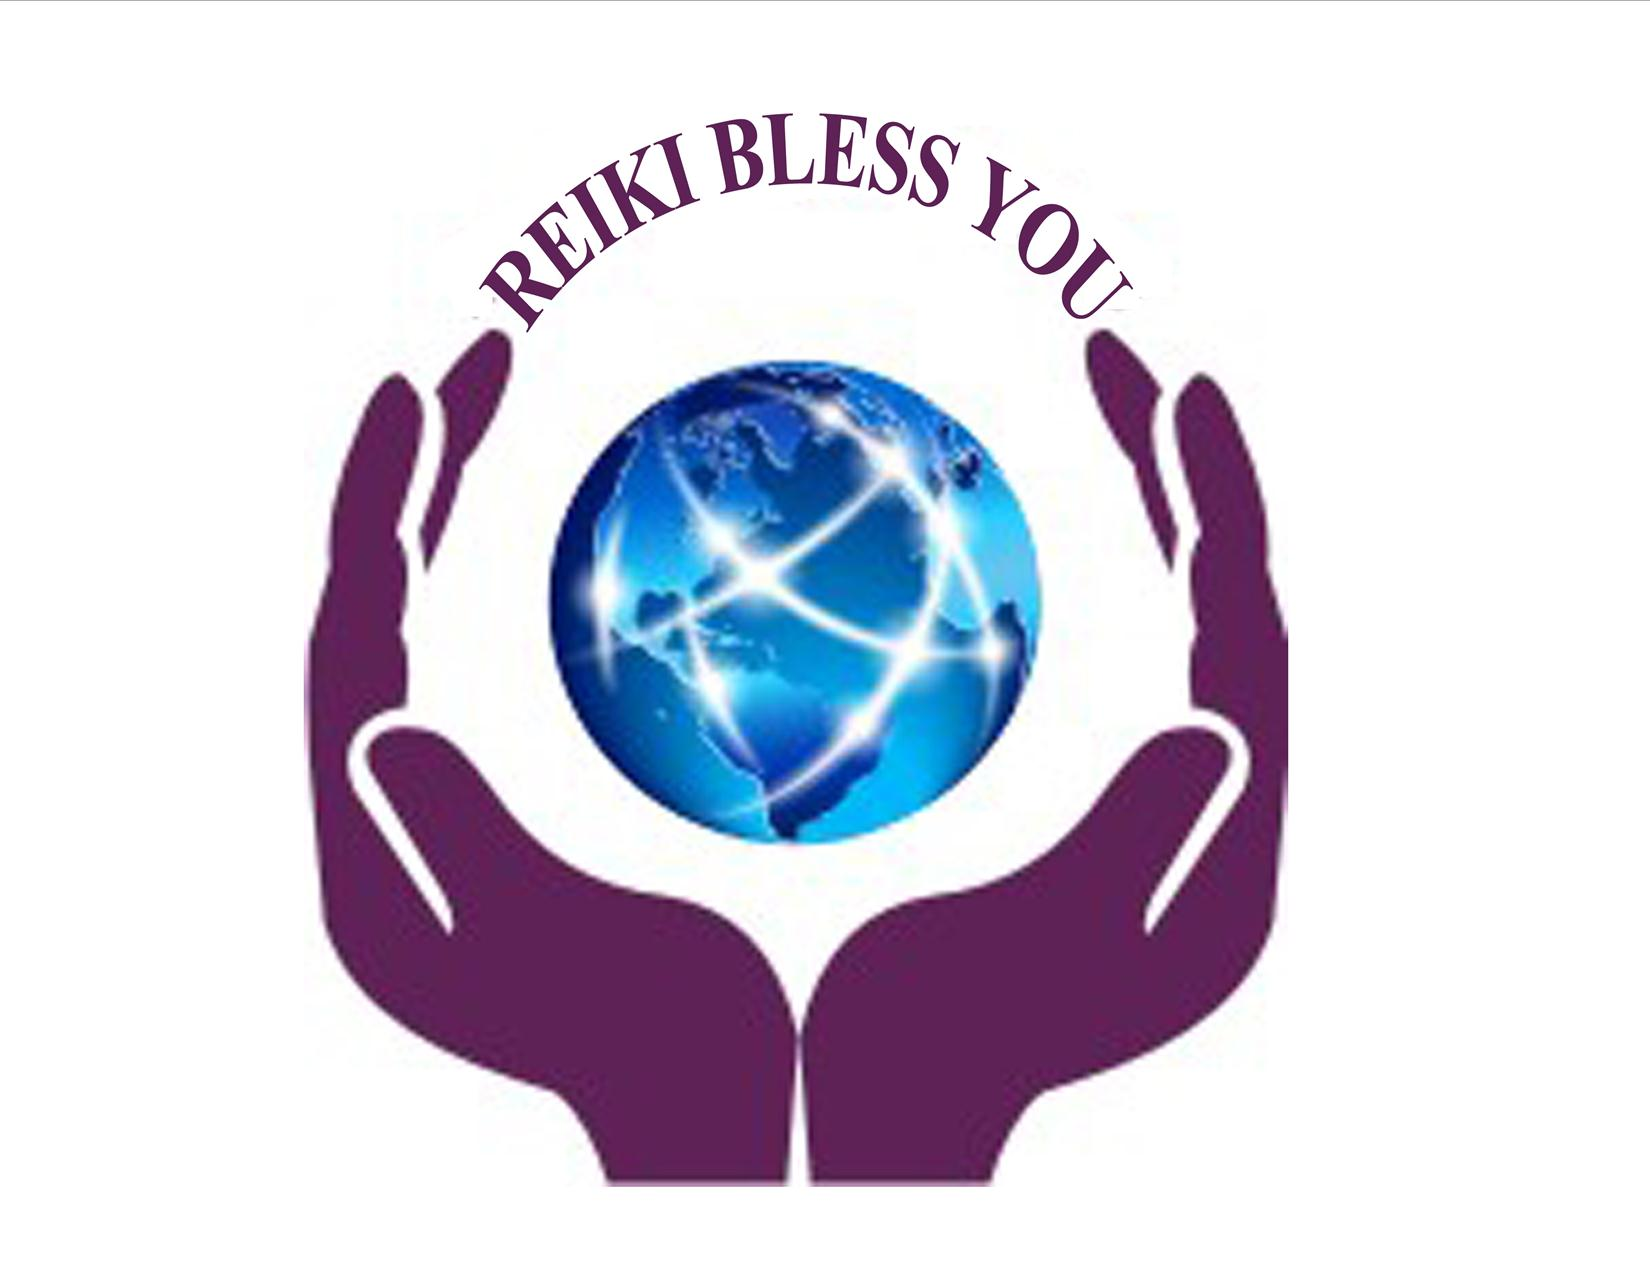 Reiki Bless You Foundation